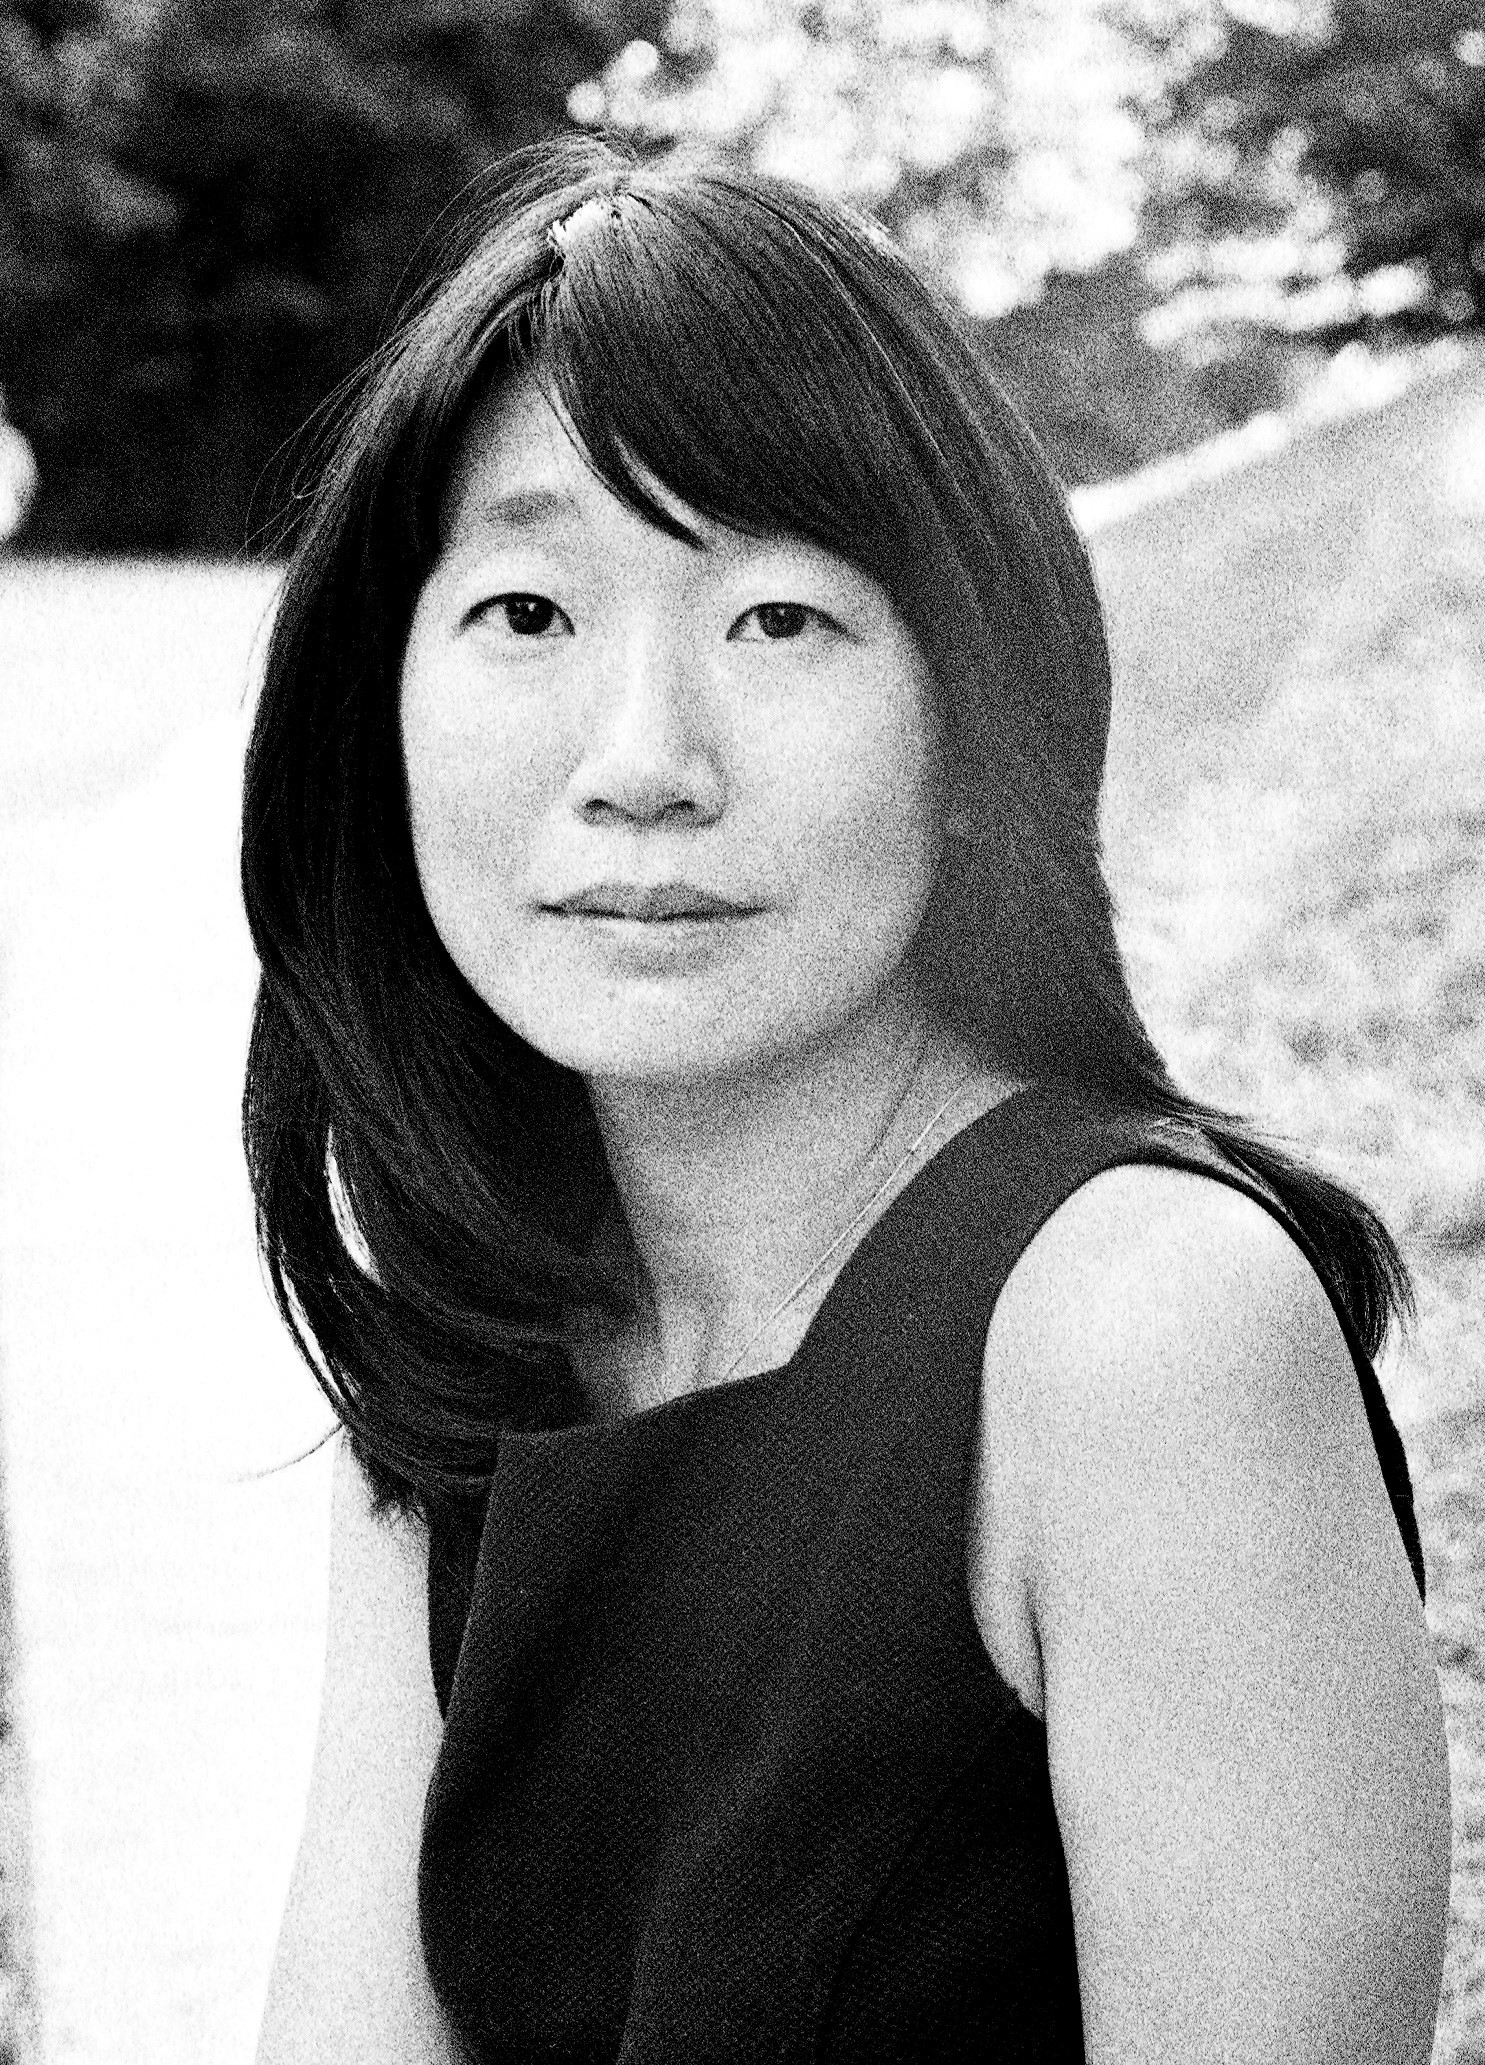 Monochrome photograph of the writer Madeleine Thien